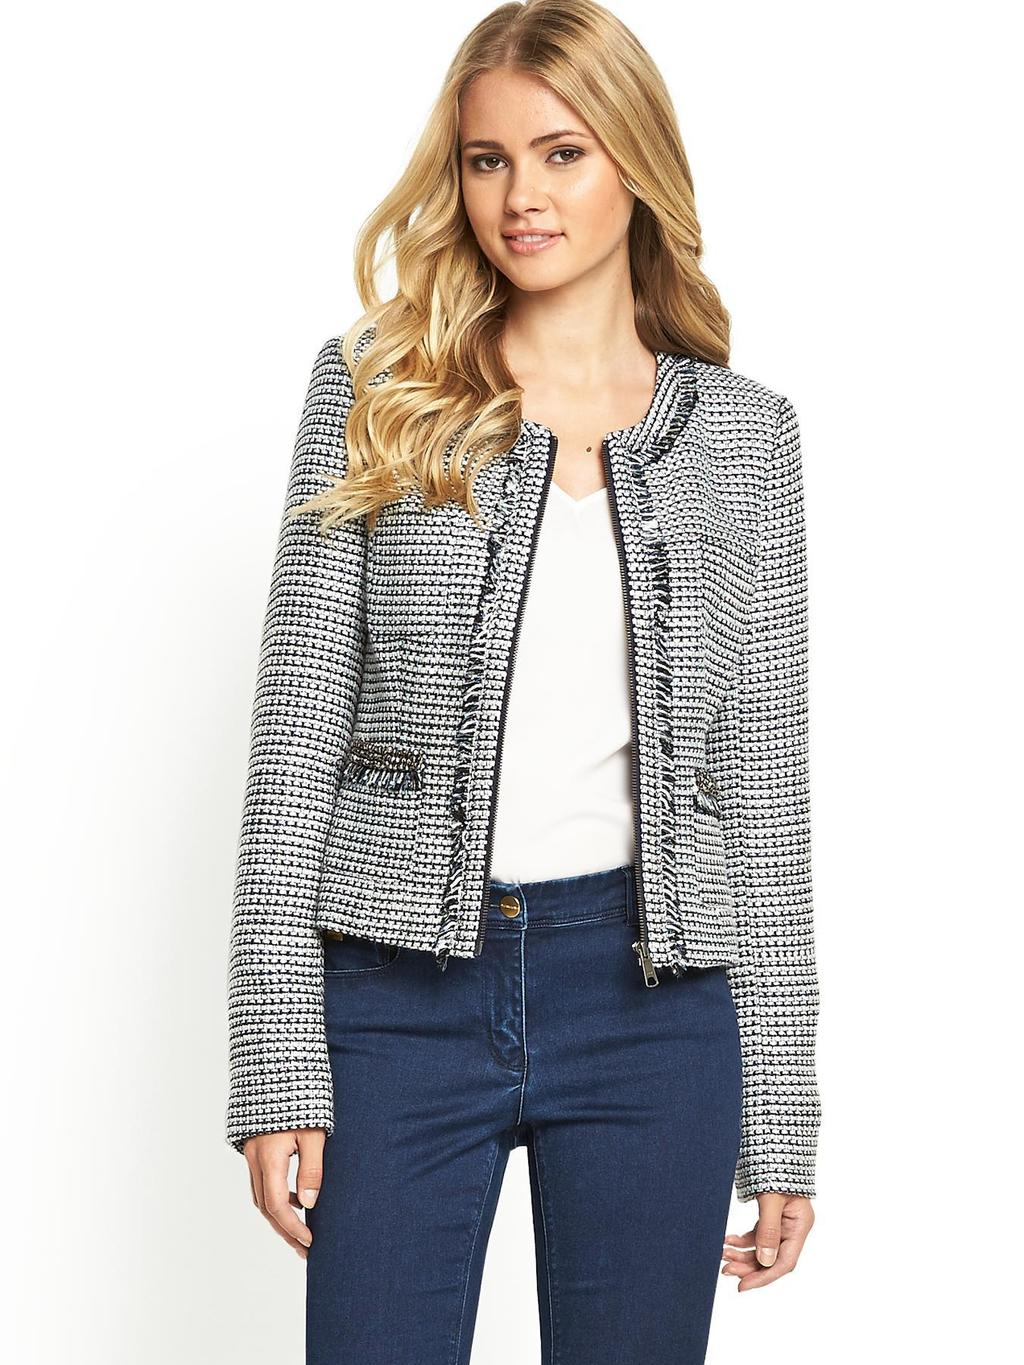 Boucle Jacket, Navy - style: single breasted blazer; collar: round collar/collarless; pattern: herringbone/tweed; predominant colour: navy; occasions: evening, work, creative work; length: standard; fit: tailored/fitted; fibres: polyester/polyamide - 100%; sleeve length: long sleeve; sleeve style: standard; collar break: low/open; pattern type: fabric; pattern size: standard; texture group: tweed - light/midweight; season: s/s 2014